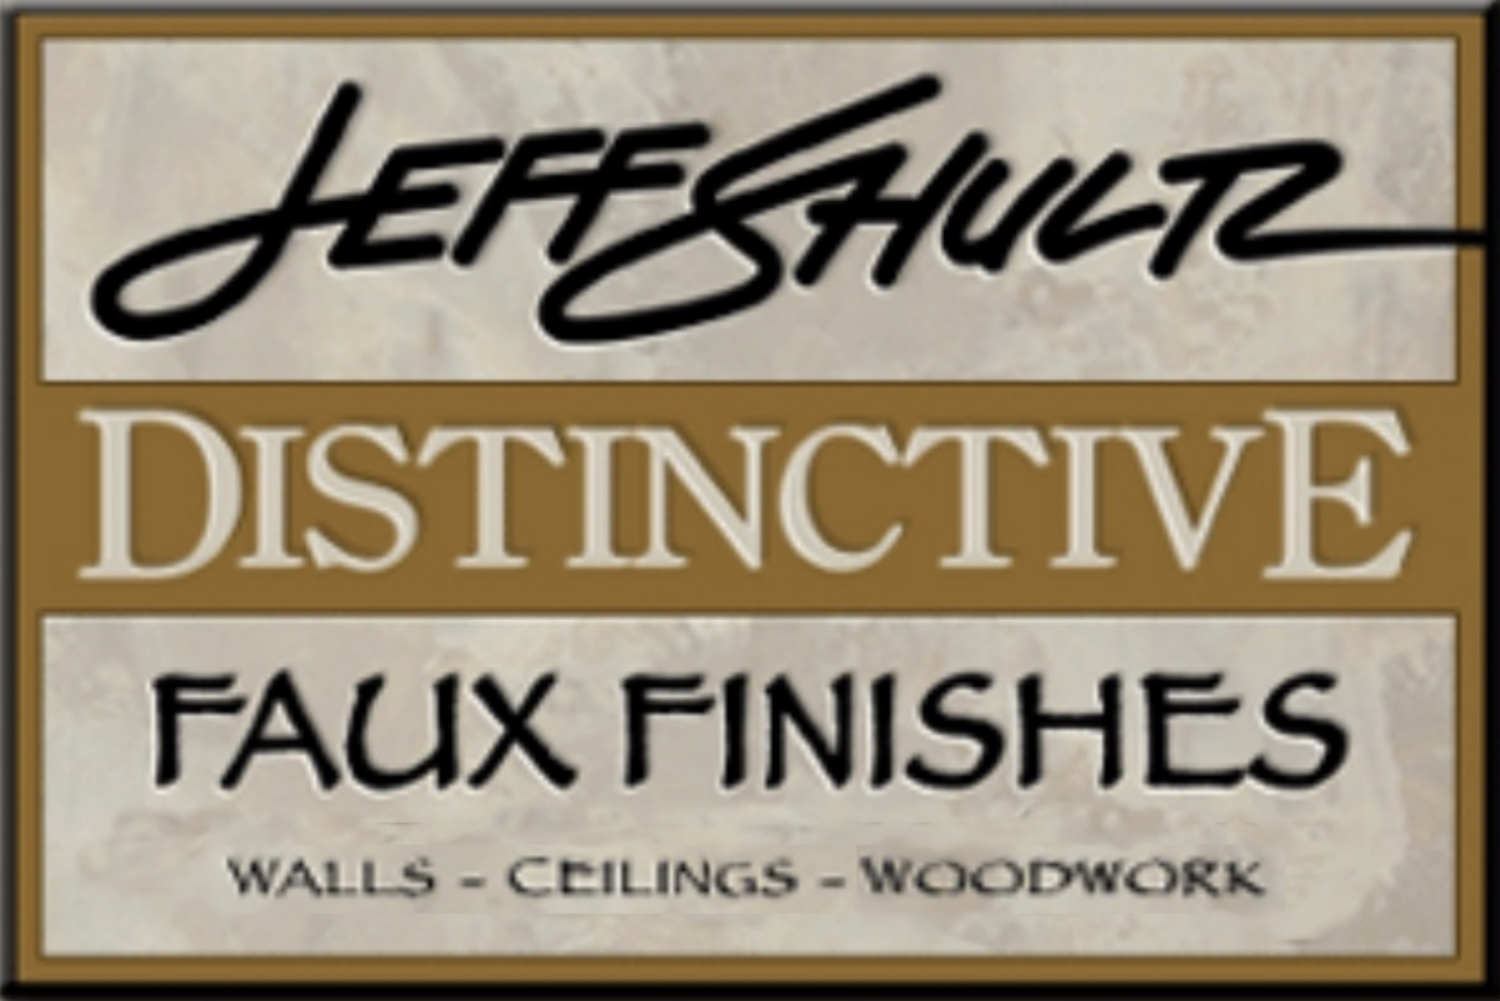 Jeff Shultz Distinctive Faux Finishes